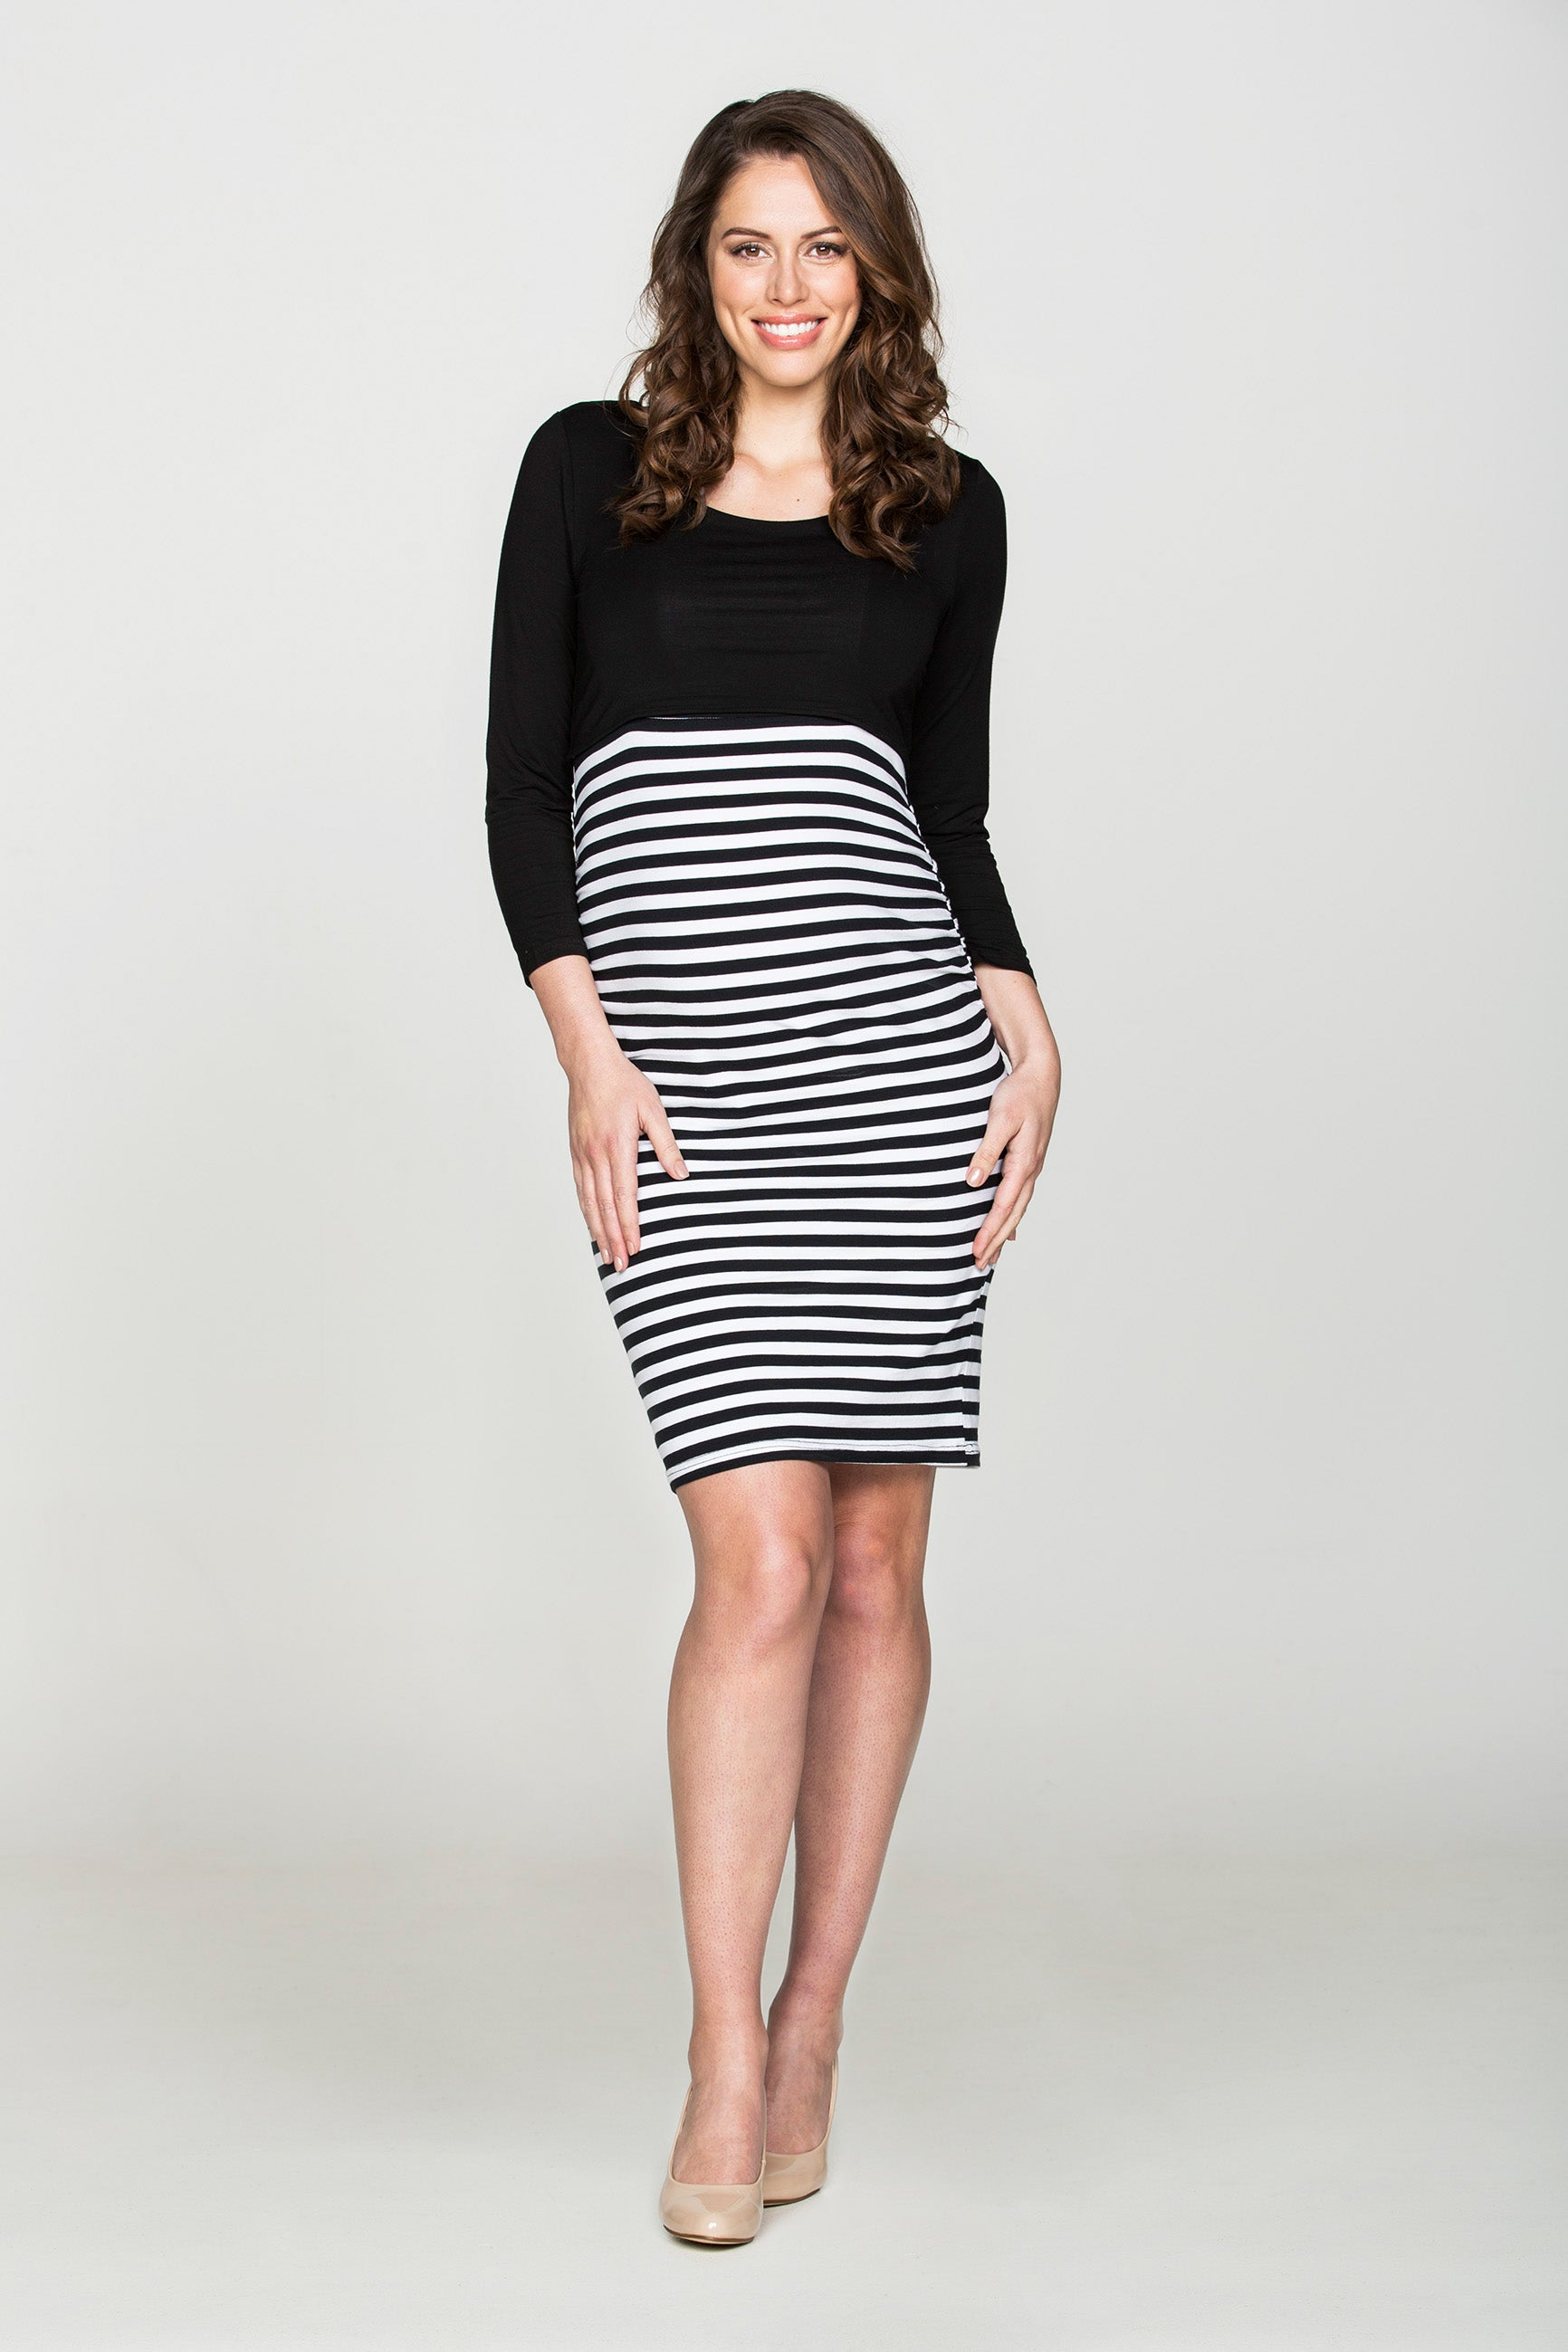 Noir et Blanc Dress - Bubba Belly Maternity Wear